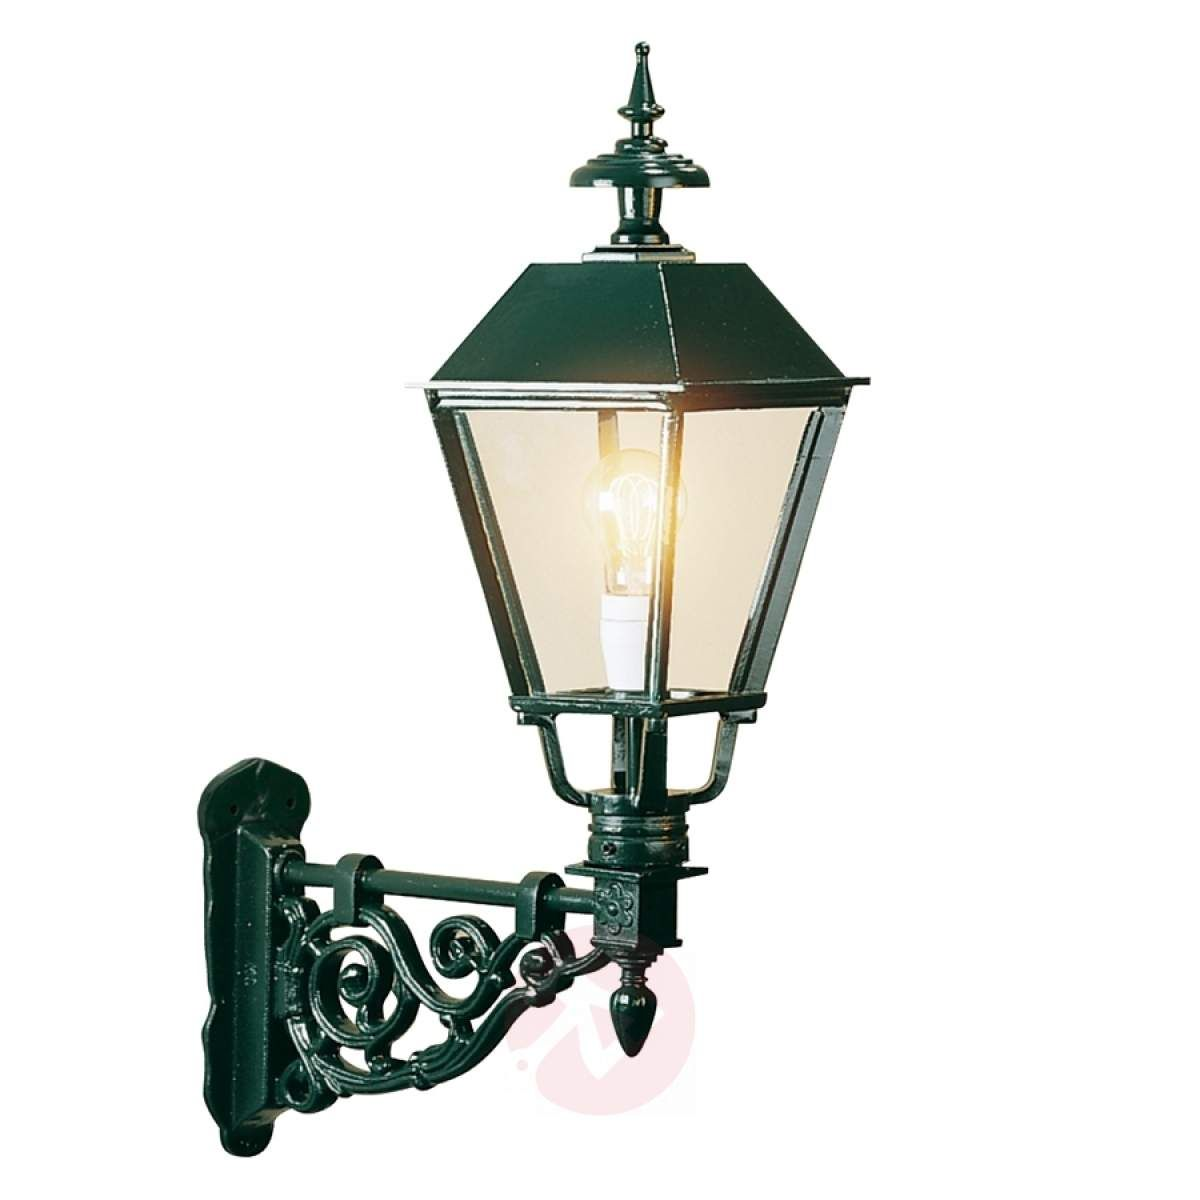 Stylowa Zewnetrzna Lampa Scienna Egmond Zielona Outdoor Wall Lighting Wall Lights Outdoor Walls